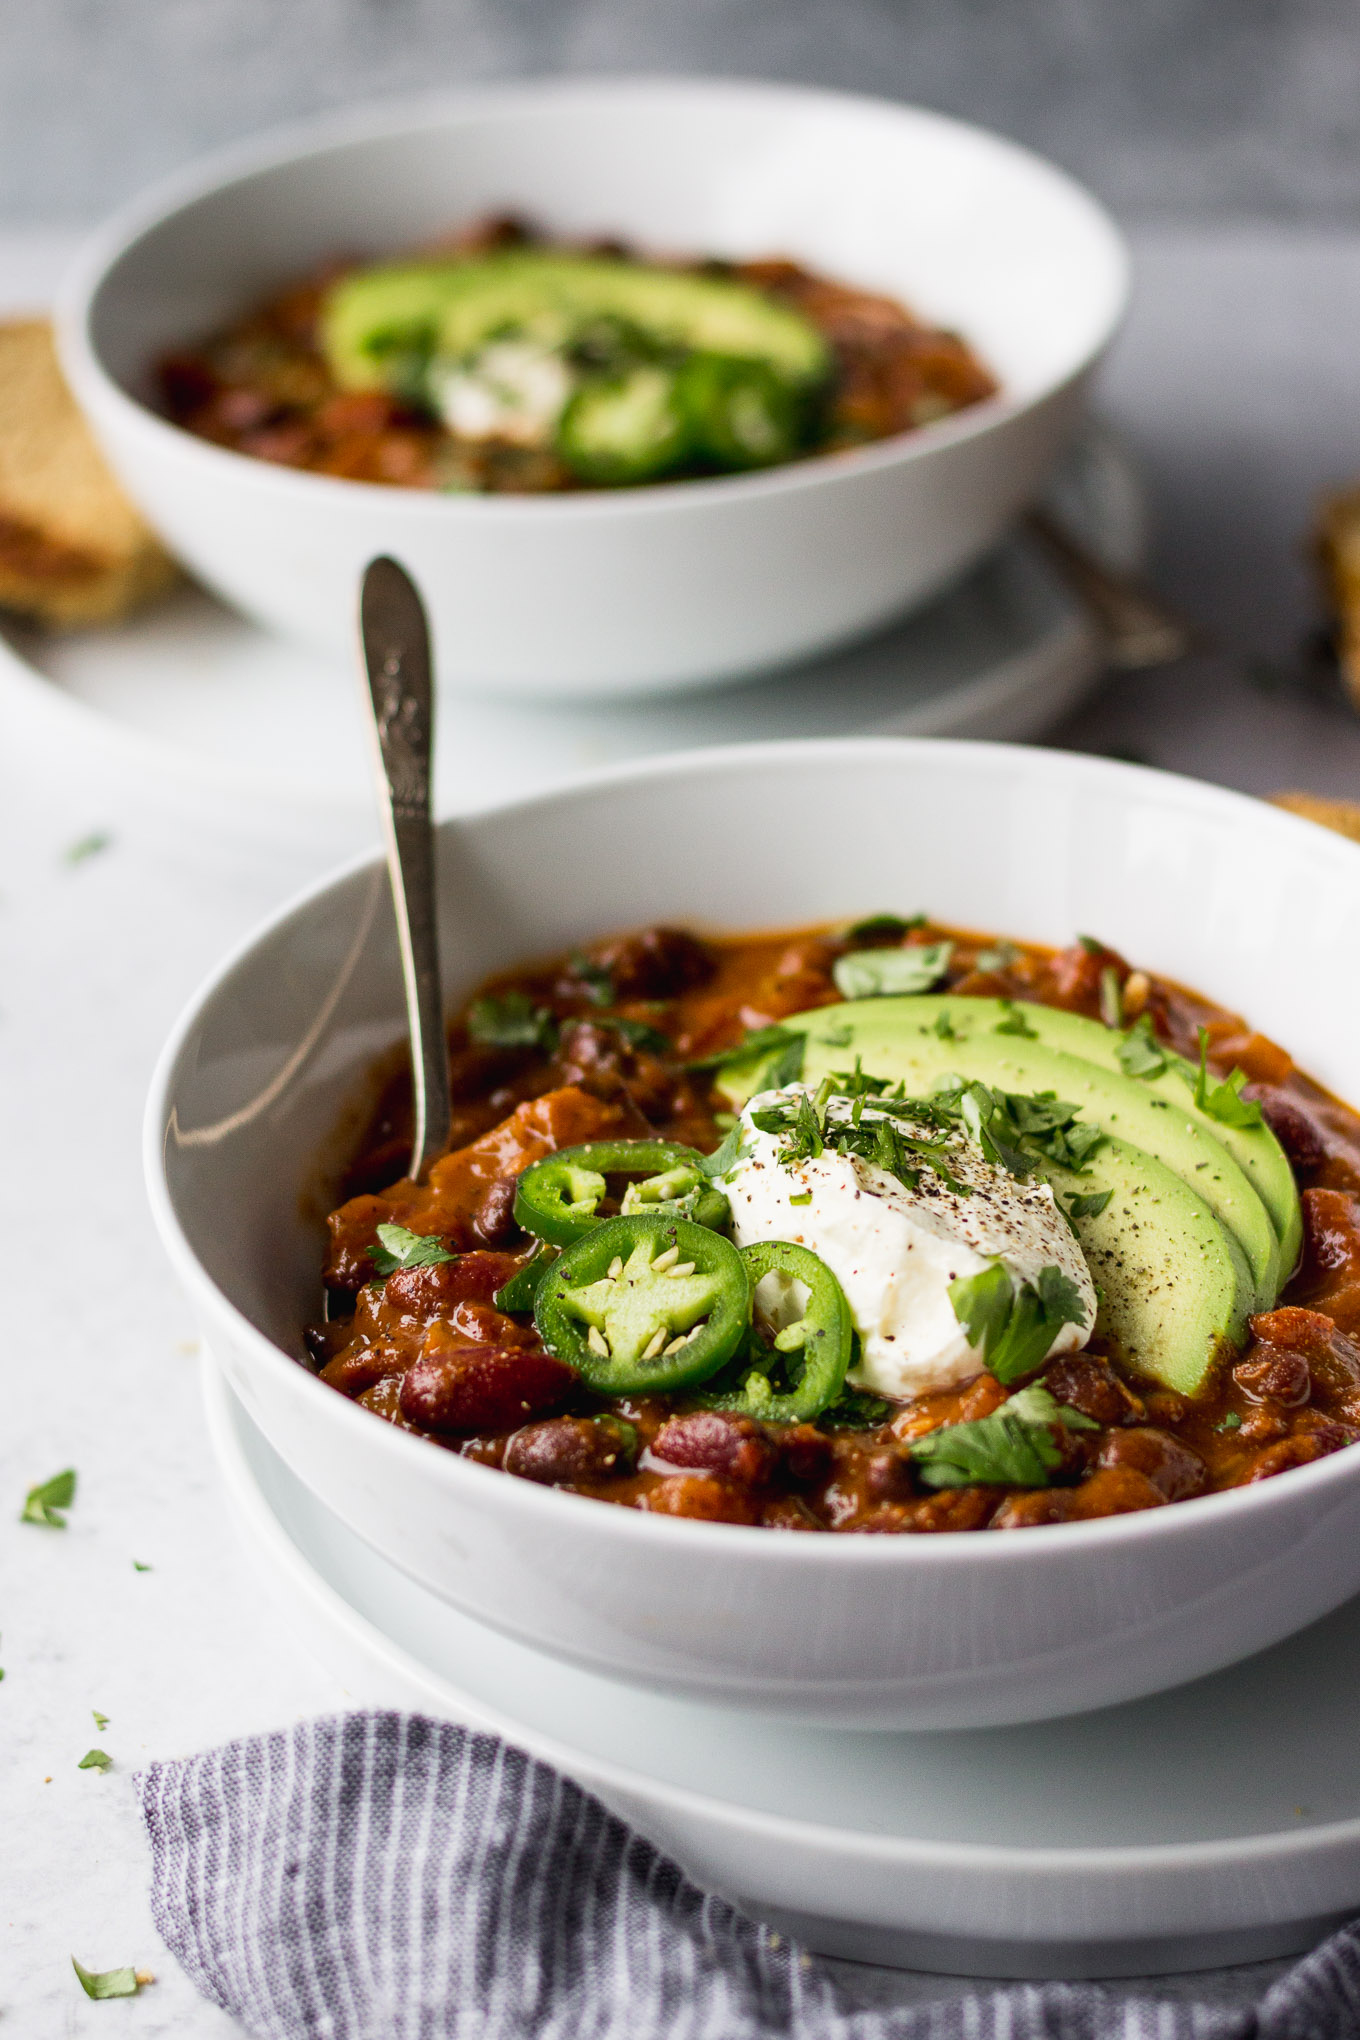 spicy vegetarian bean chili with avocado, jalapeno, and sour cream in white bowl with bread by fork in the kitchen